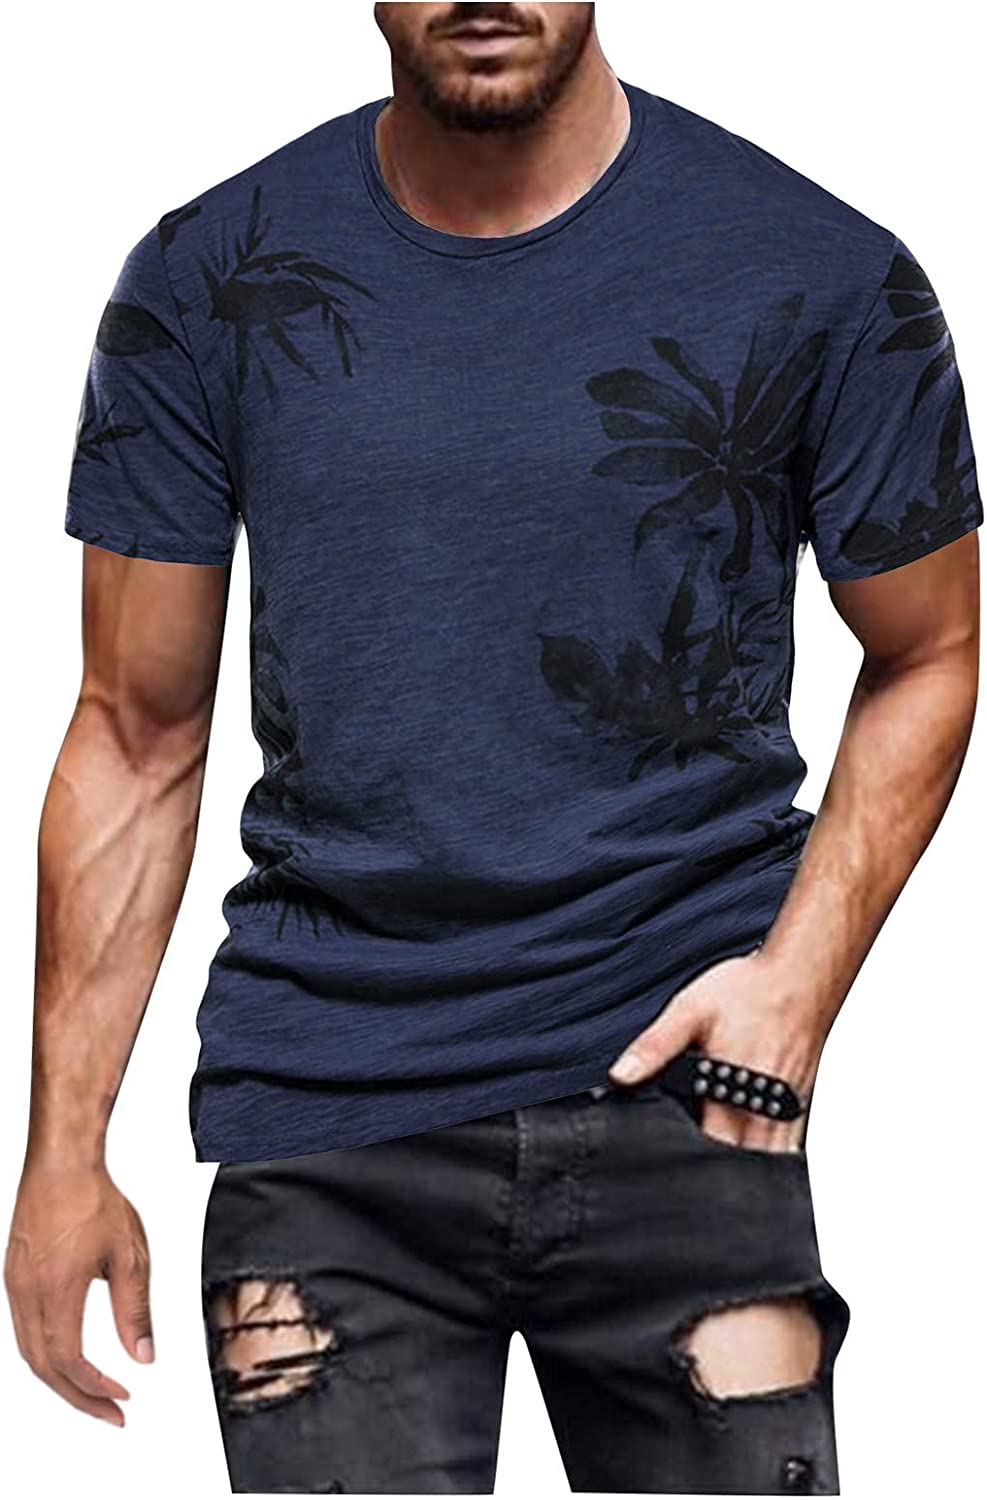 Muscle Shirts for Men Cool Designs Slim Fit Short Sleeved Muscle T Shirt Retro Big and Tall Tops Blouse